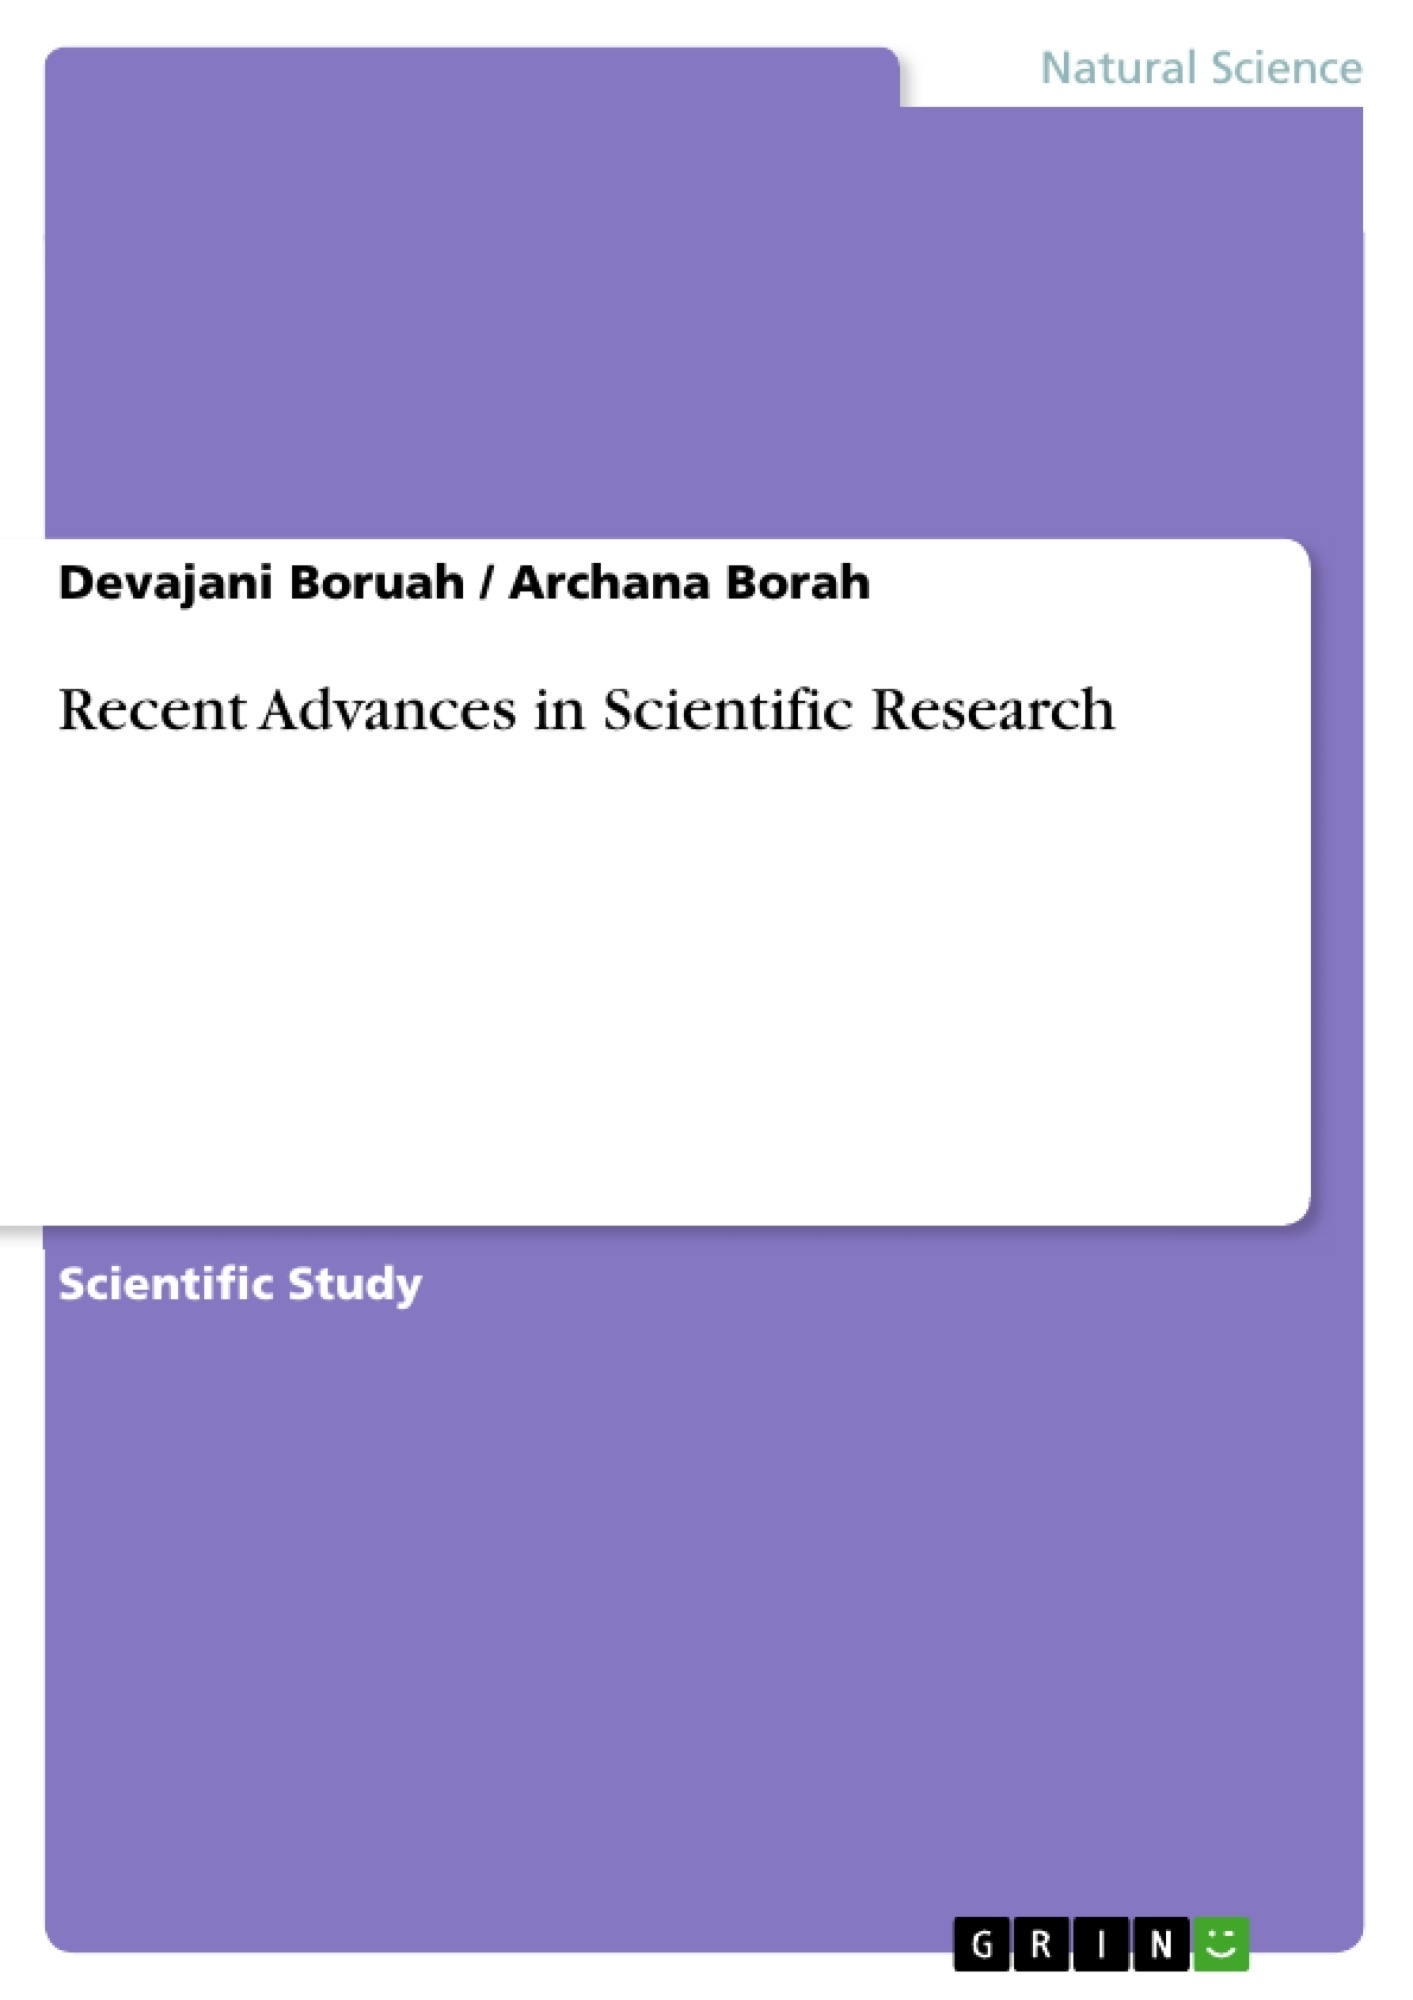 Title: Recent Advances in Scientific Research